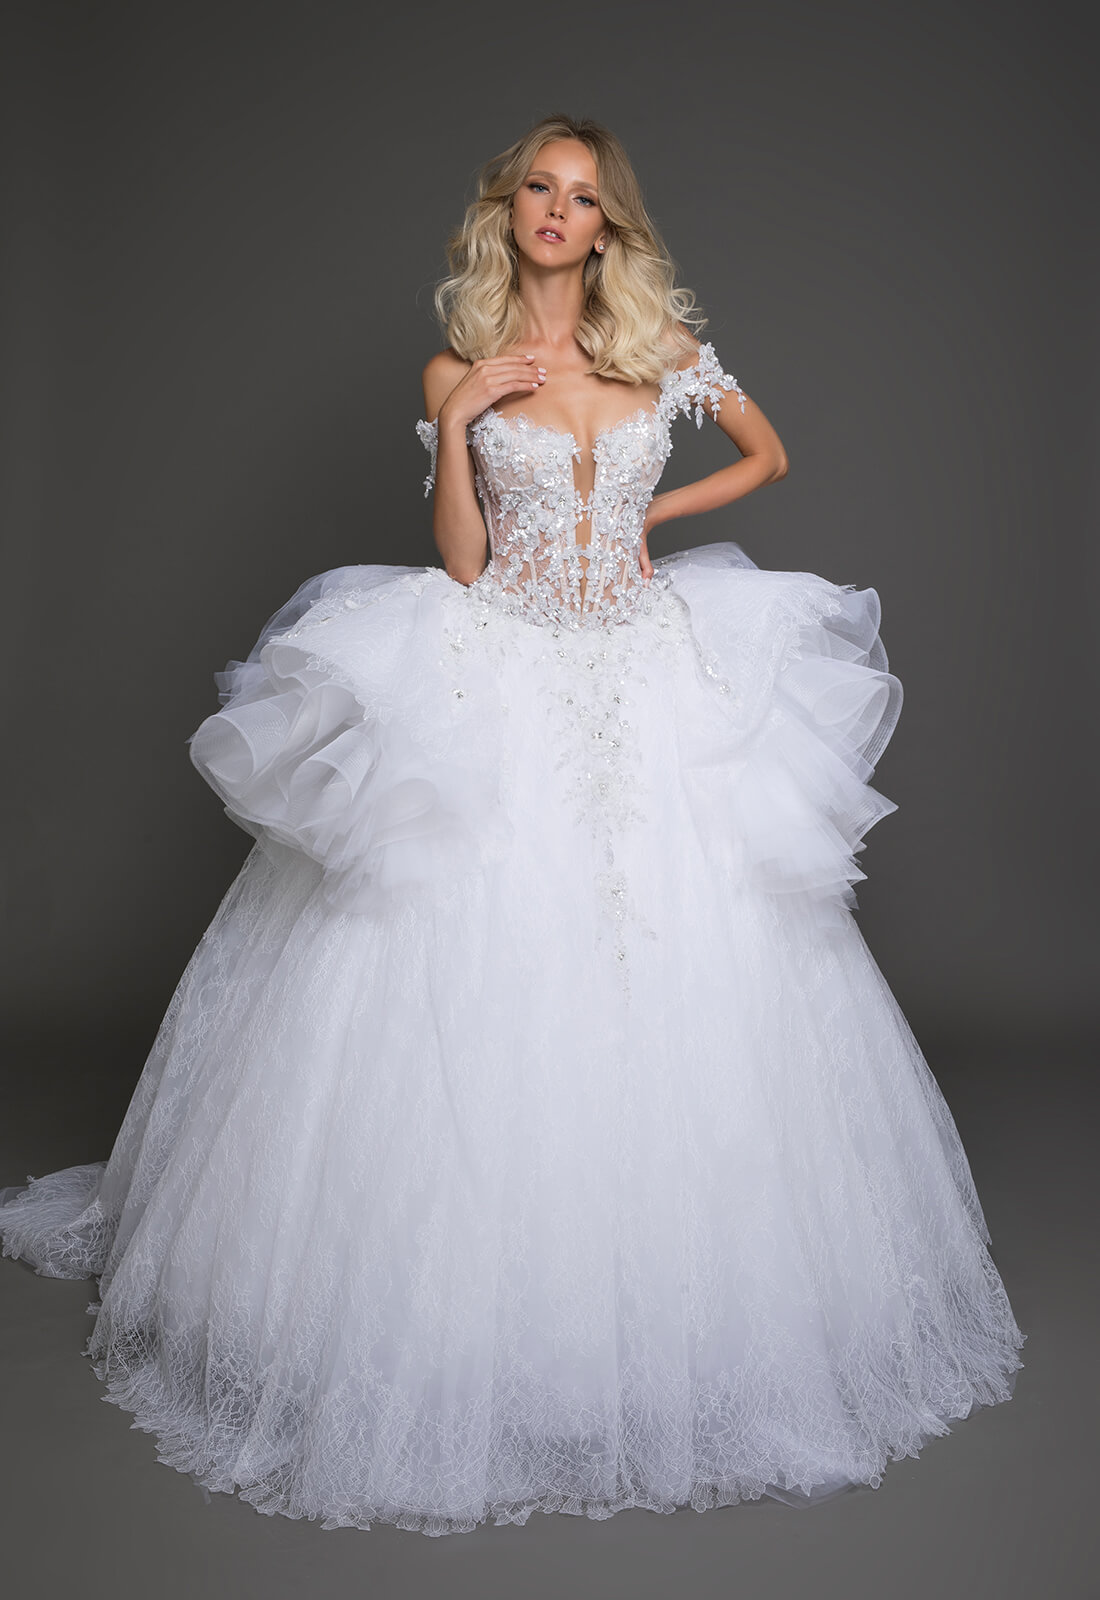 Pnina Tornai Ball Gown Wedding Dresses: Off The Shoulder Plunging Neckline Beaded Lace Bodice Full